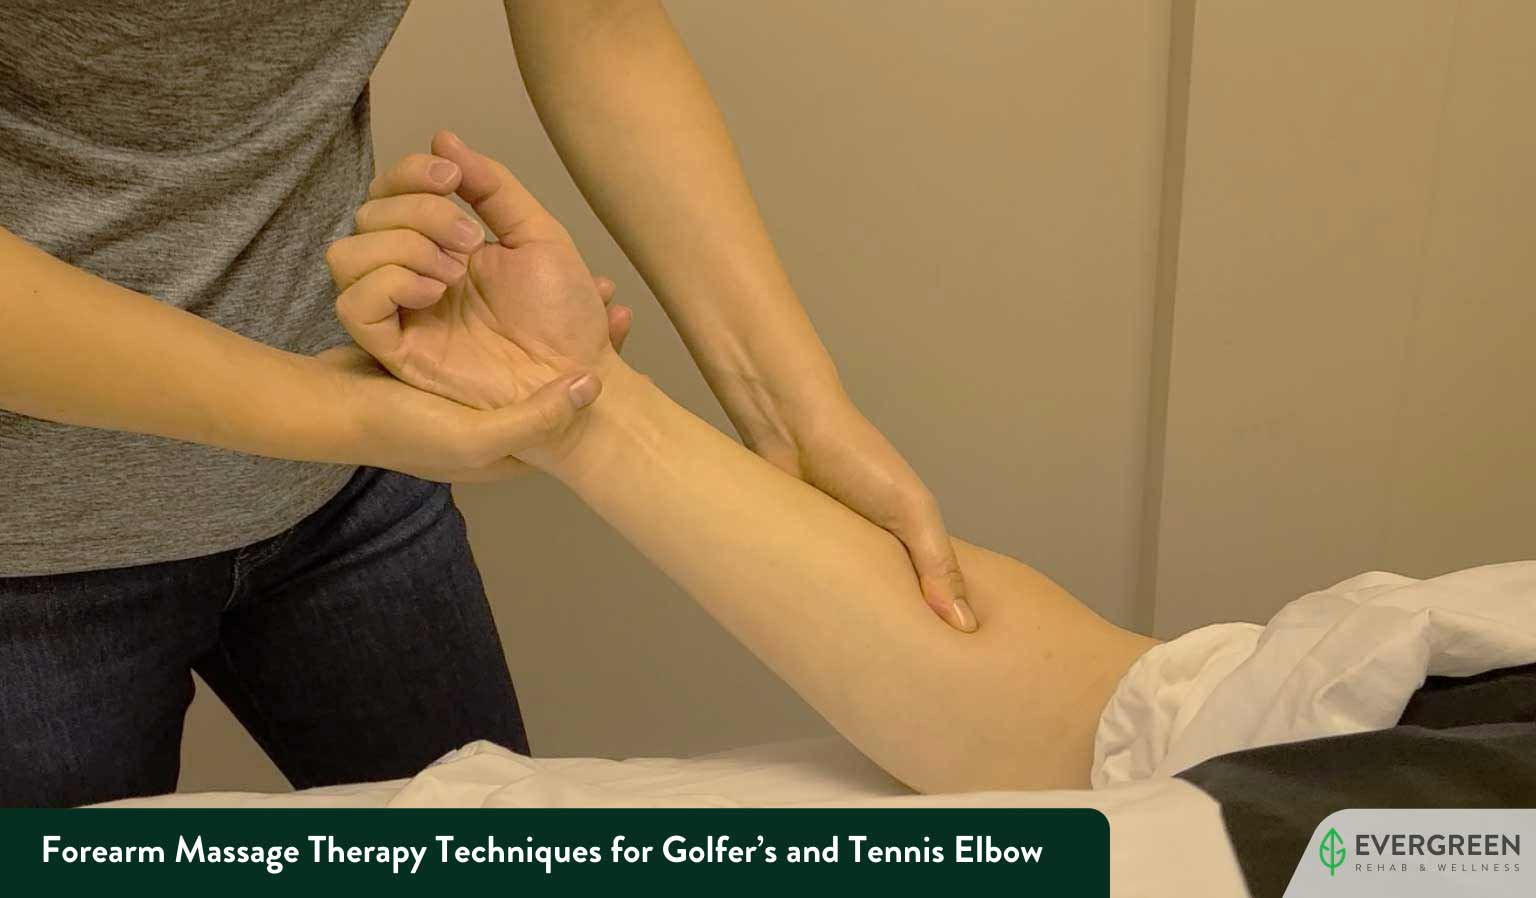 Forearm Massage Therapy Techniques for Golfer's and Tennis Elbow